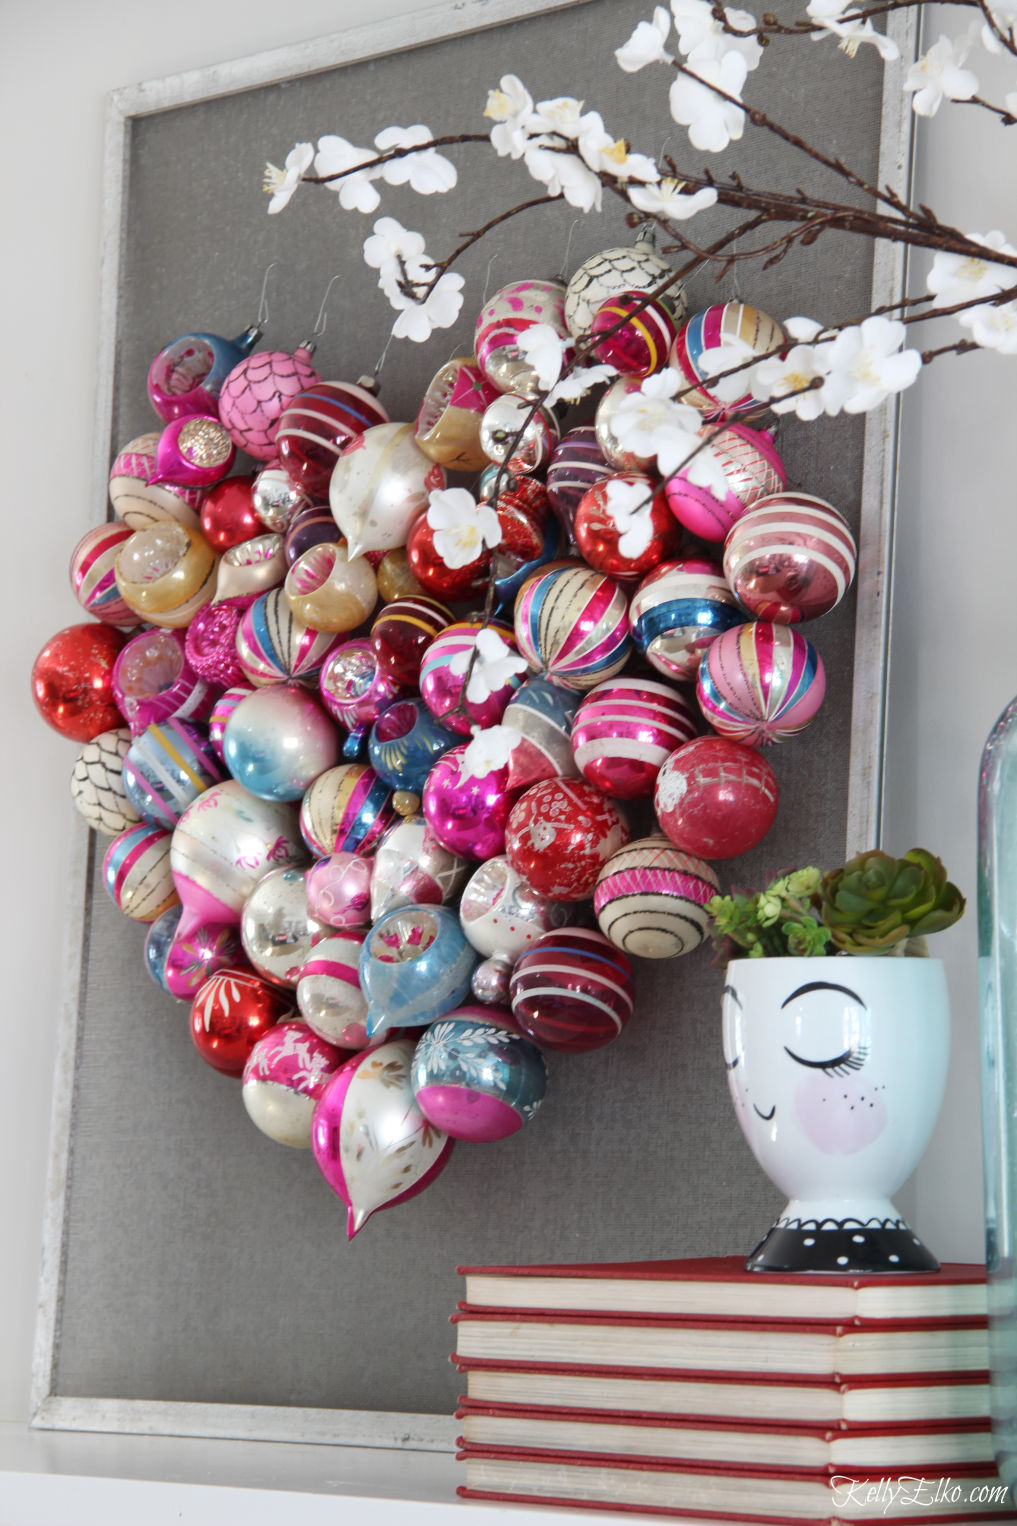 How to make a Christmas ornament Valentine heart screen - love the vintage shiny brite ornaments kellyelko.com #valentines #valentinecraft #valentinesday #christmasornaments #vintageornaments #shinybrites #valentinedecor #valentinesdaydecor #valentinesparty #hearts #diycrafts